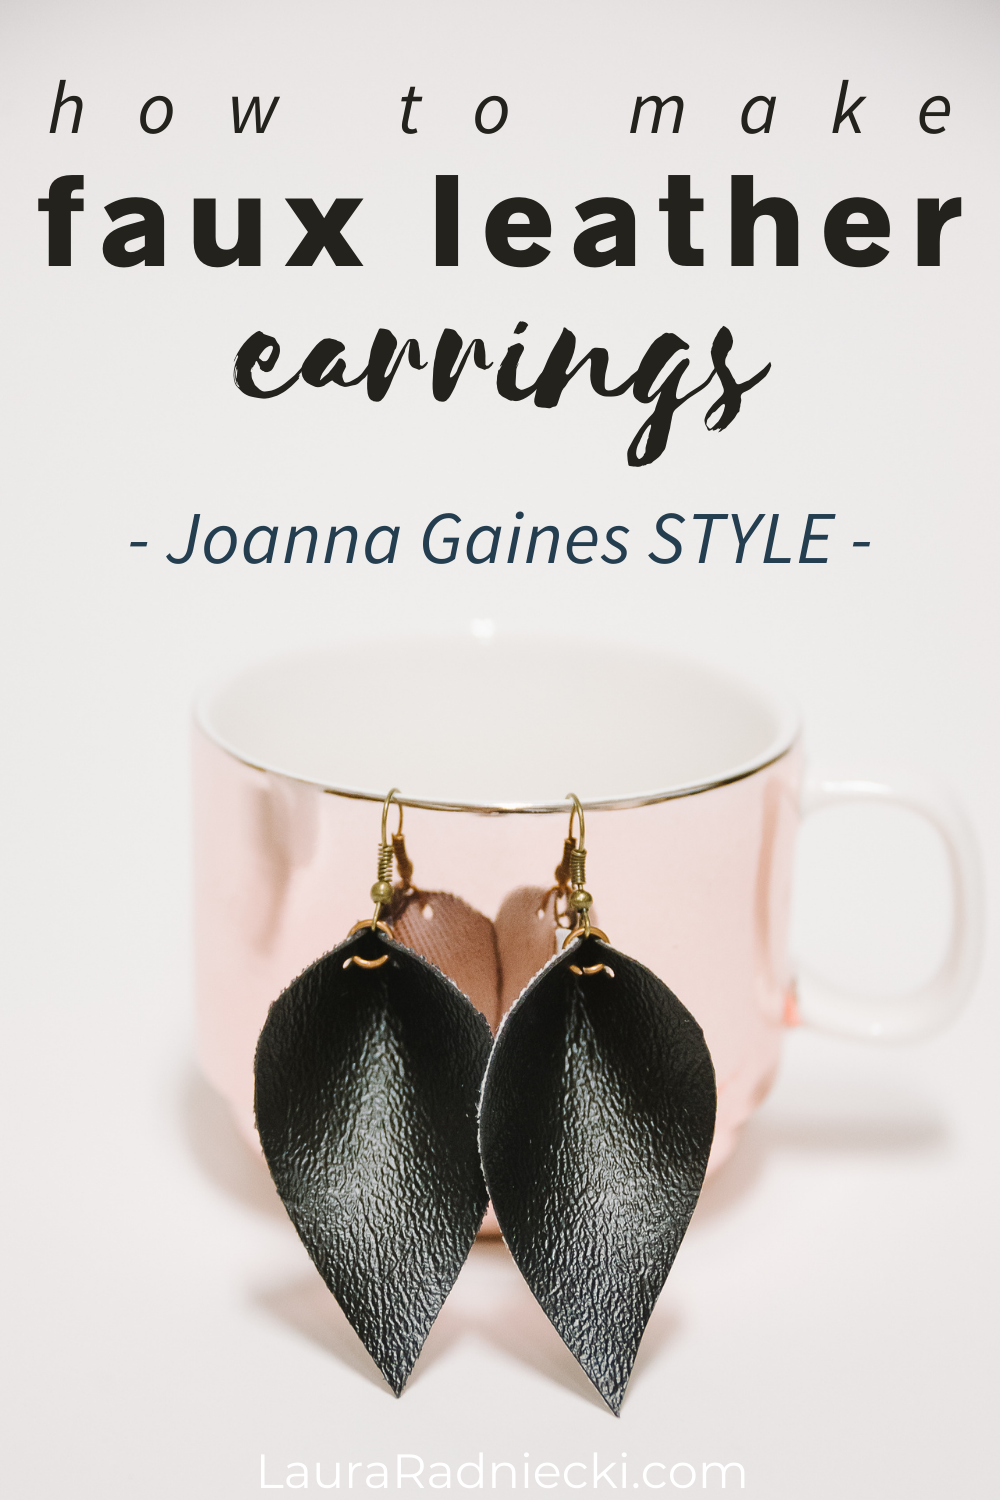 how to make faux leather earrings | joanna gaines style